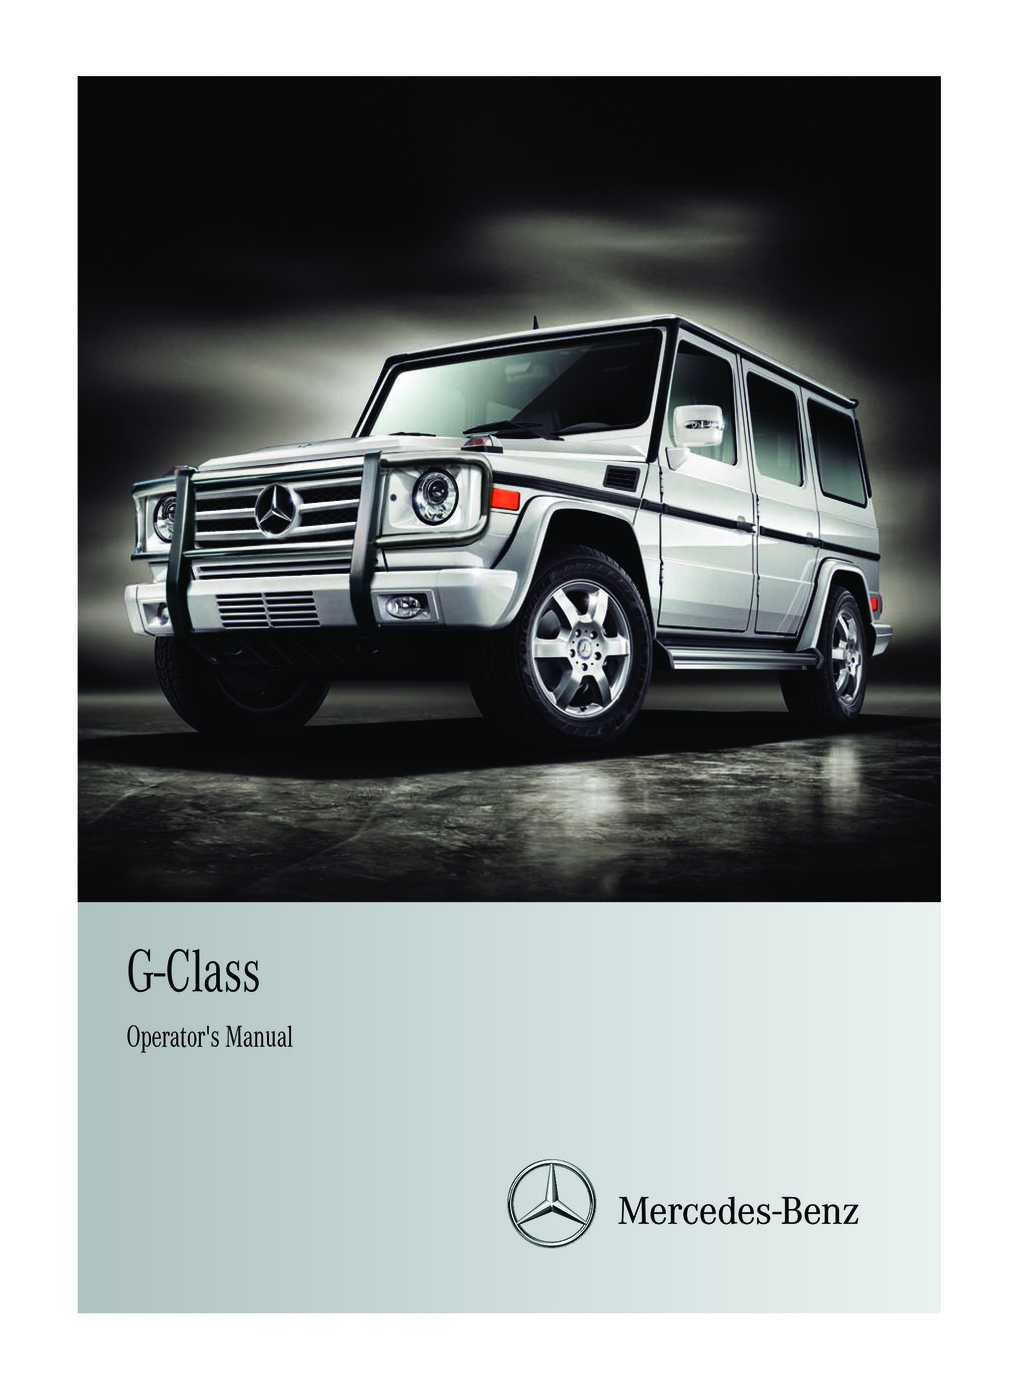 2011 Mercedes-Benz G Class owners manual